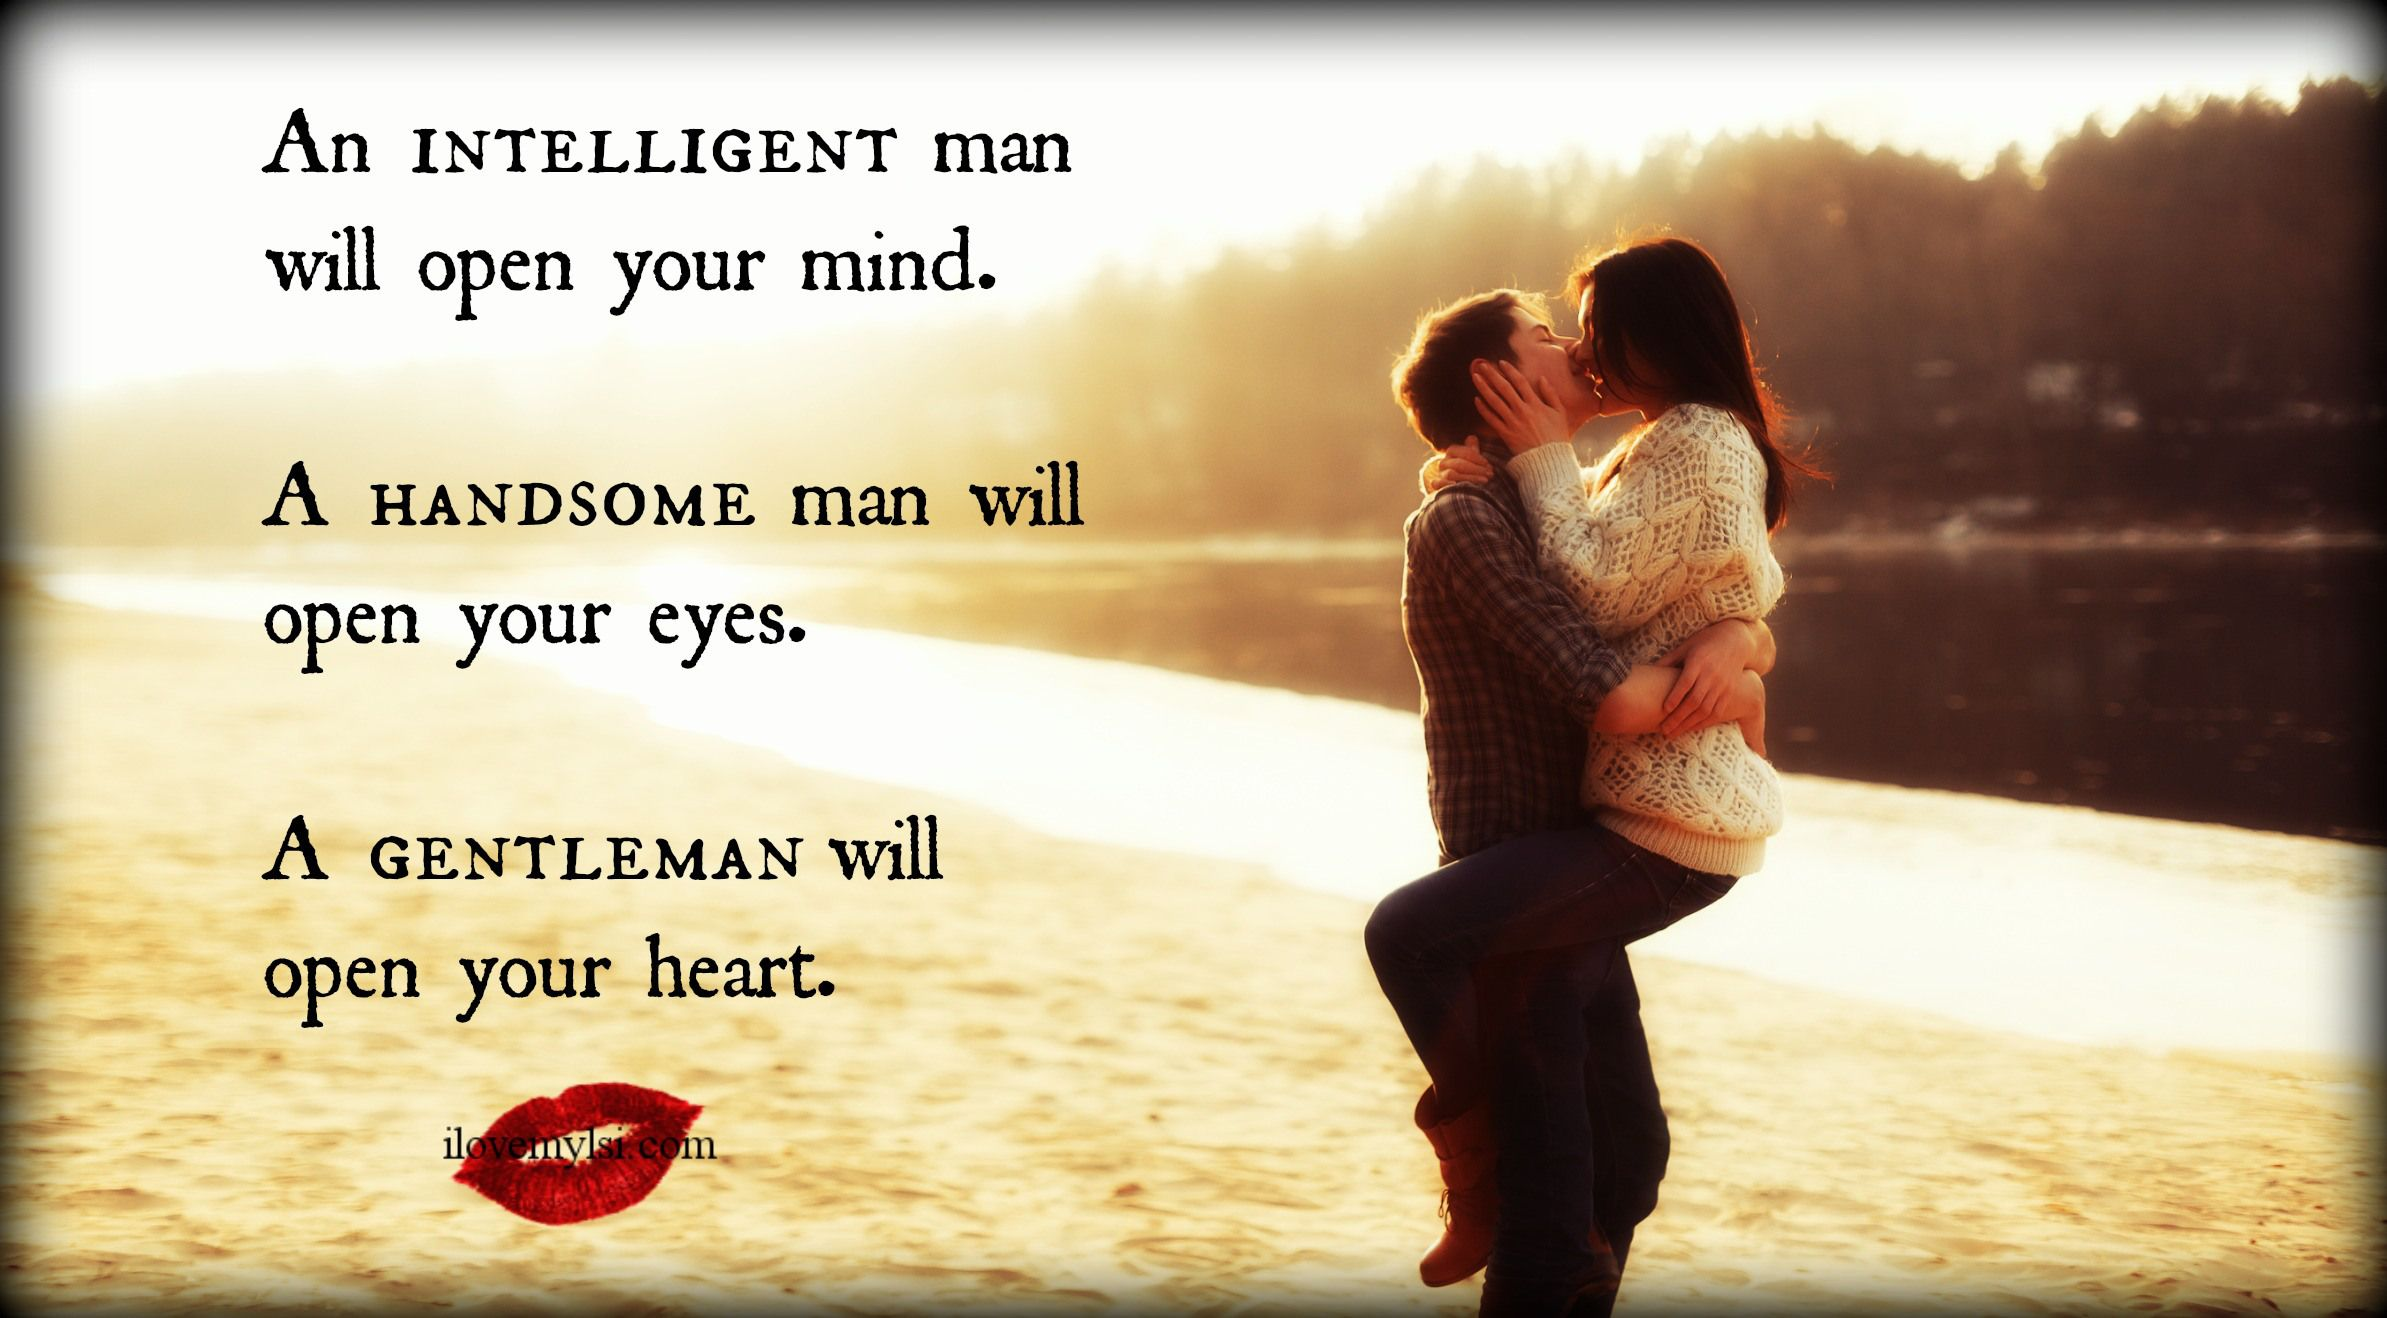 An intelligent man will open your mind, a handsome man...